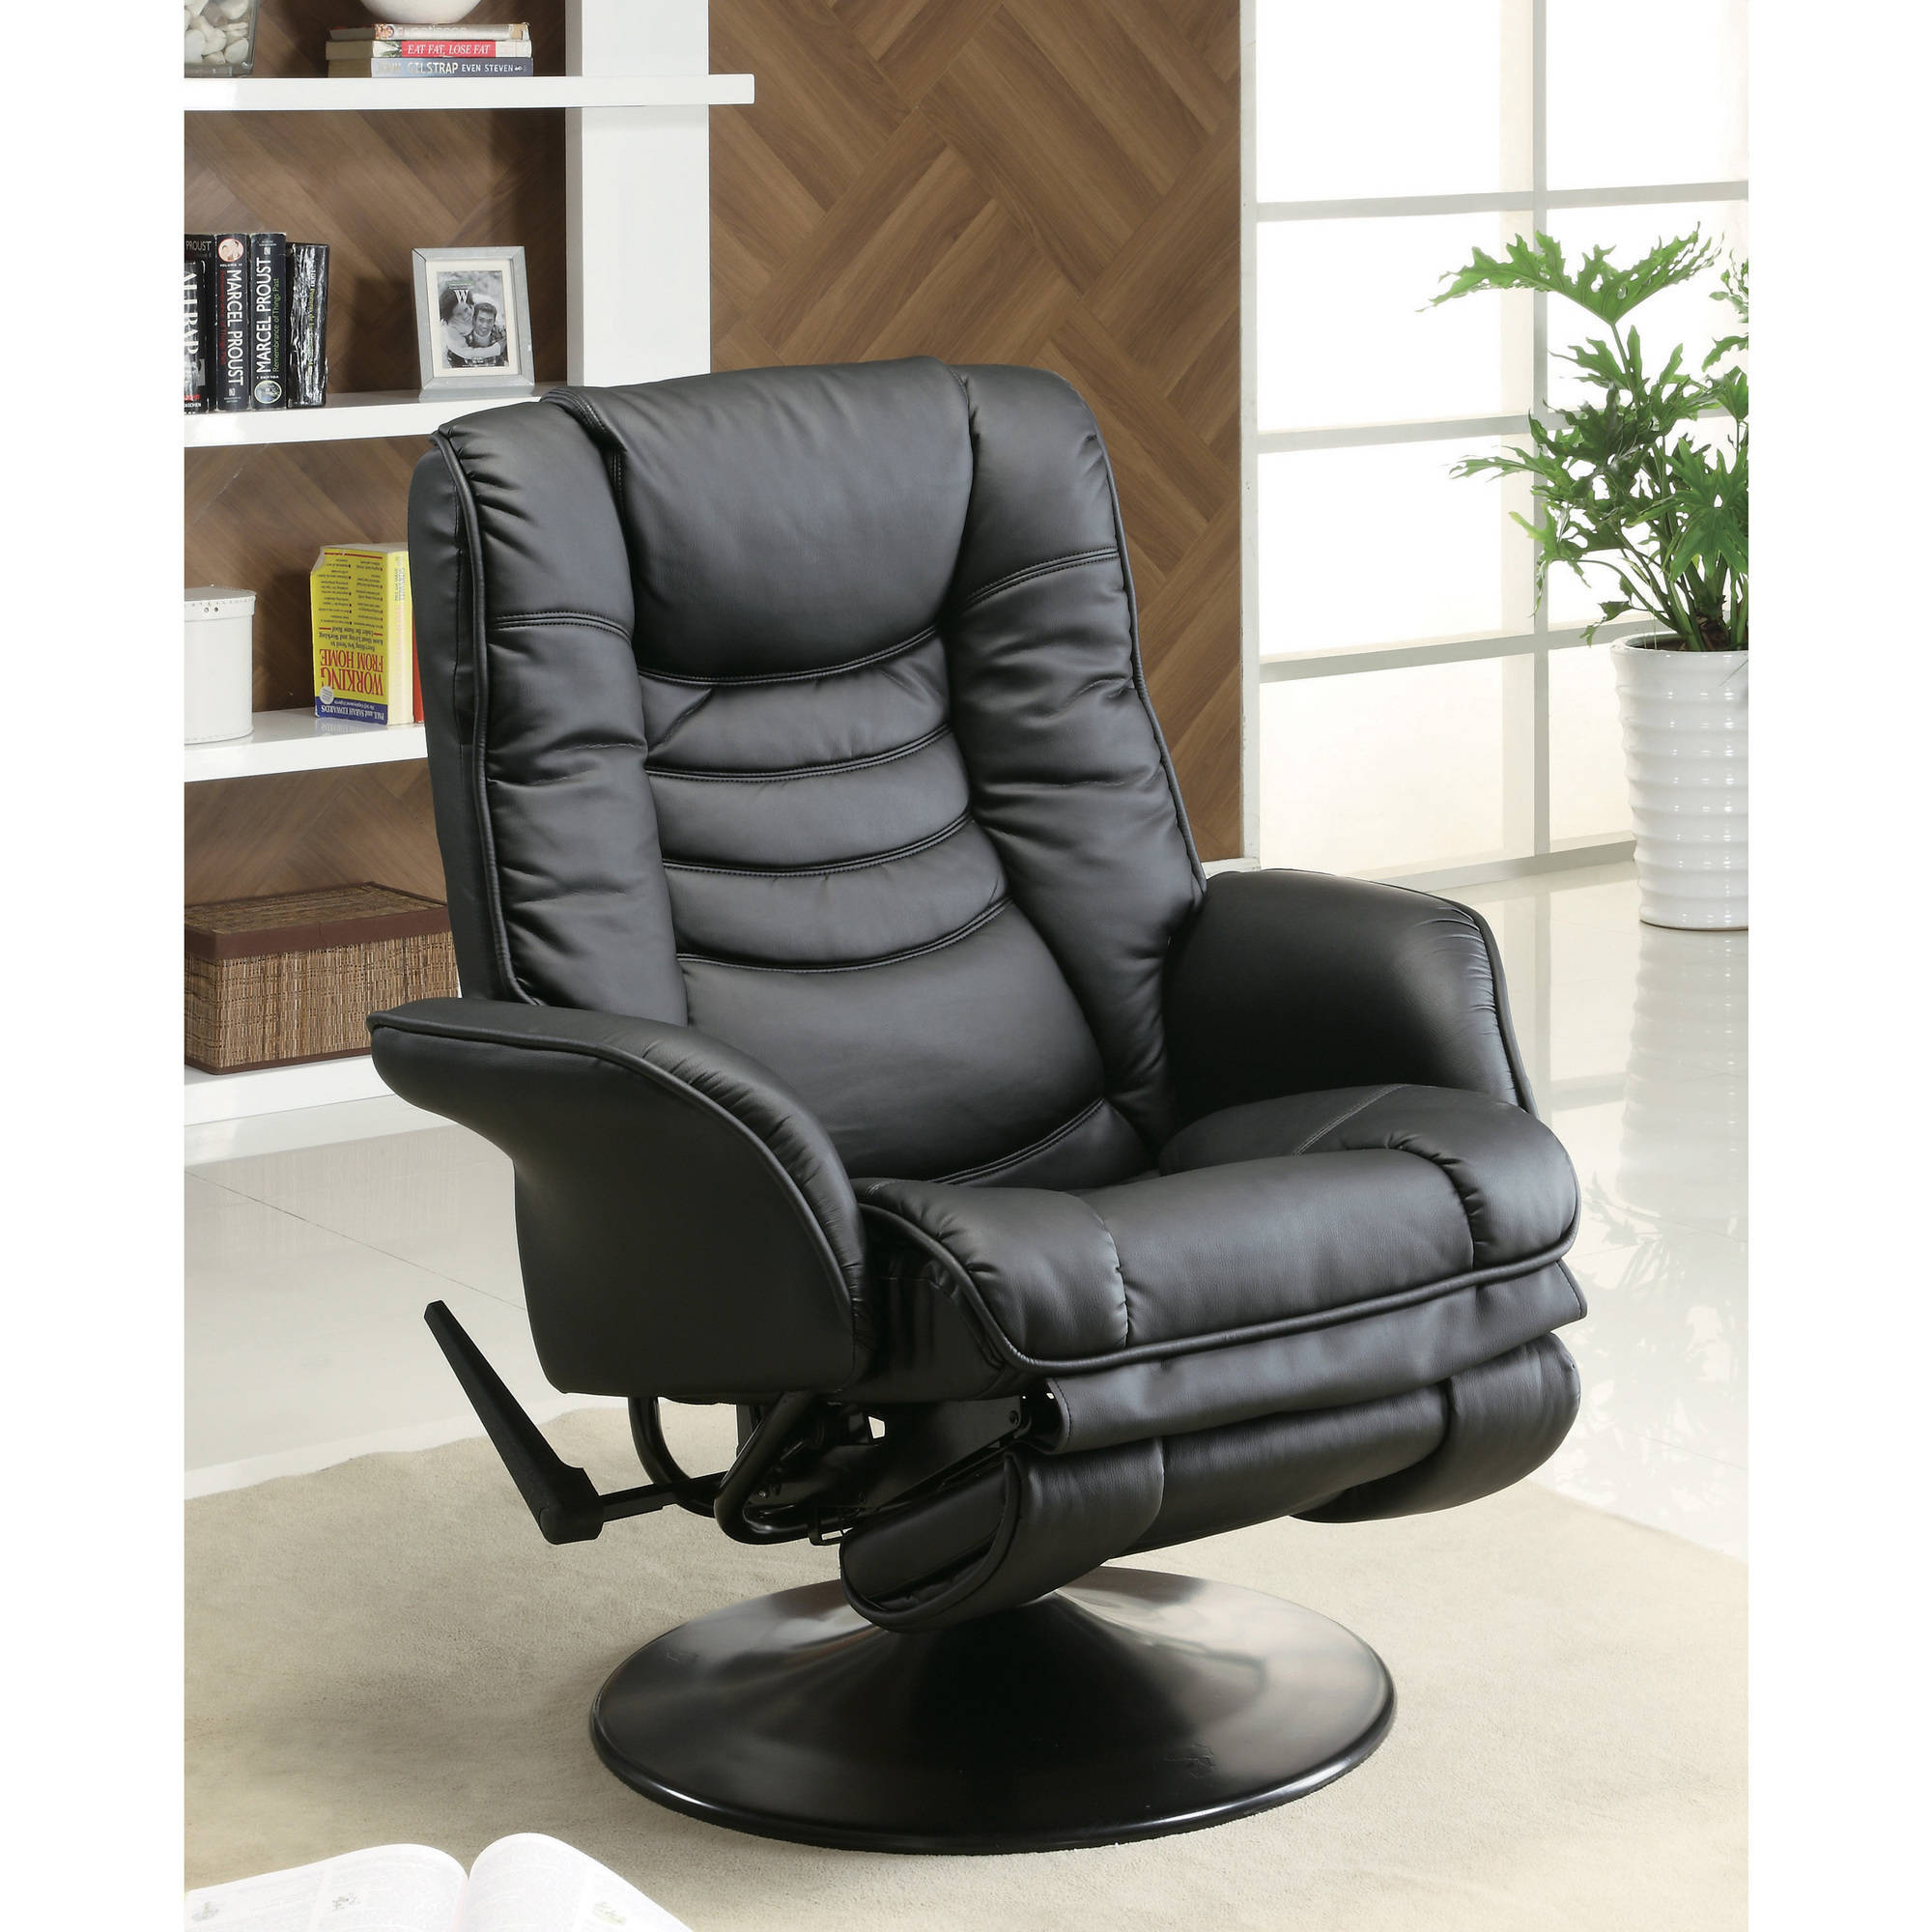 by cheap cranley chairs chair commerce reclining recliner homelegance oj var